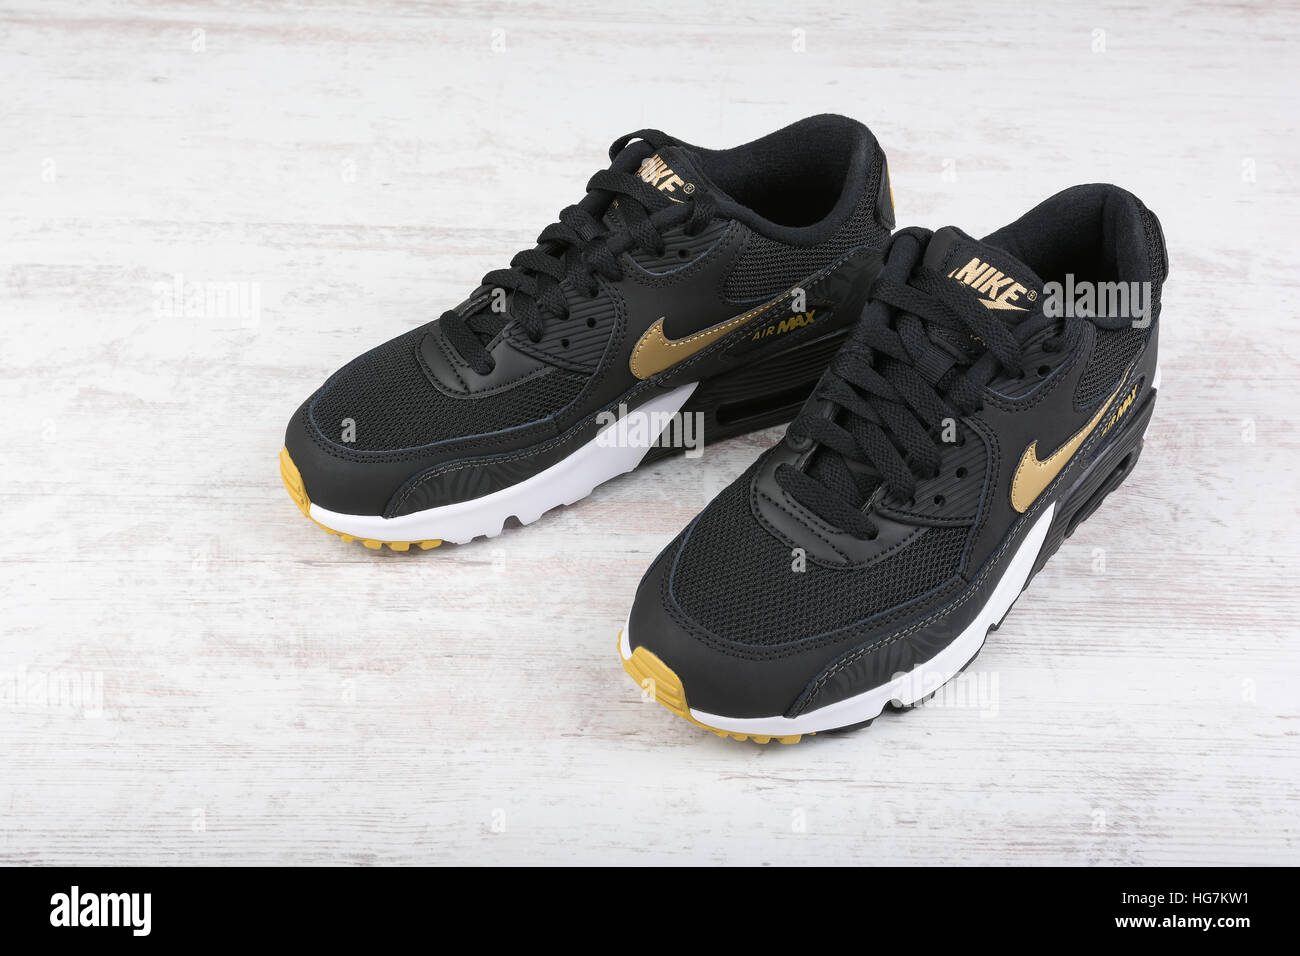 BURGAS, BULGARIA - DECEMBER 29, 2016: Nike Air MAX women's shoes - sneakers  in black, on white wooden background. Donka Zheleva / Alamy Stock Photo